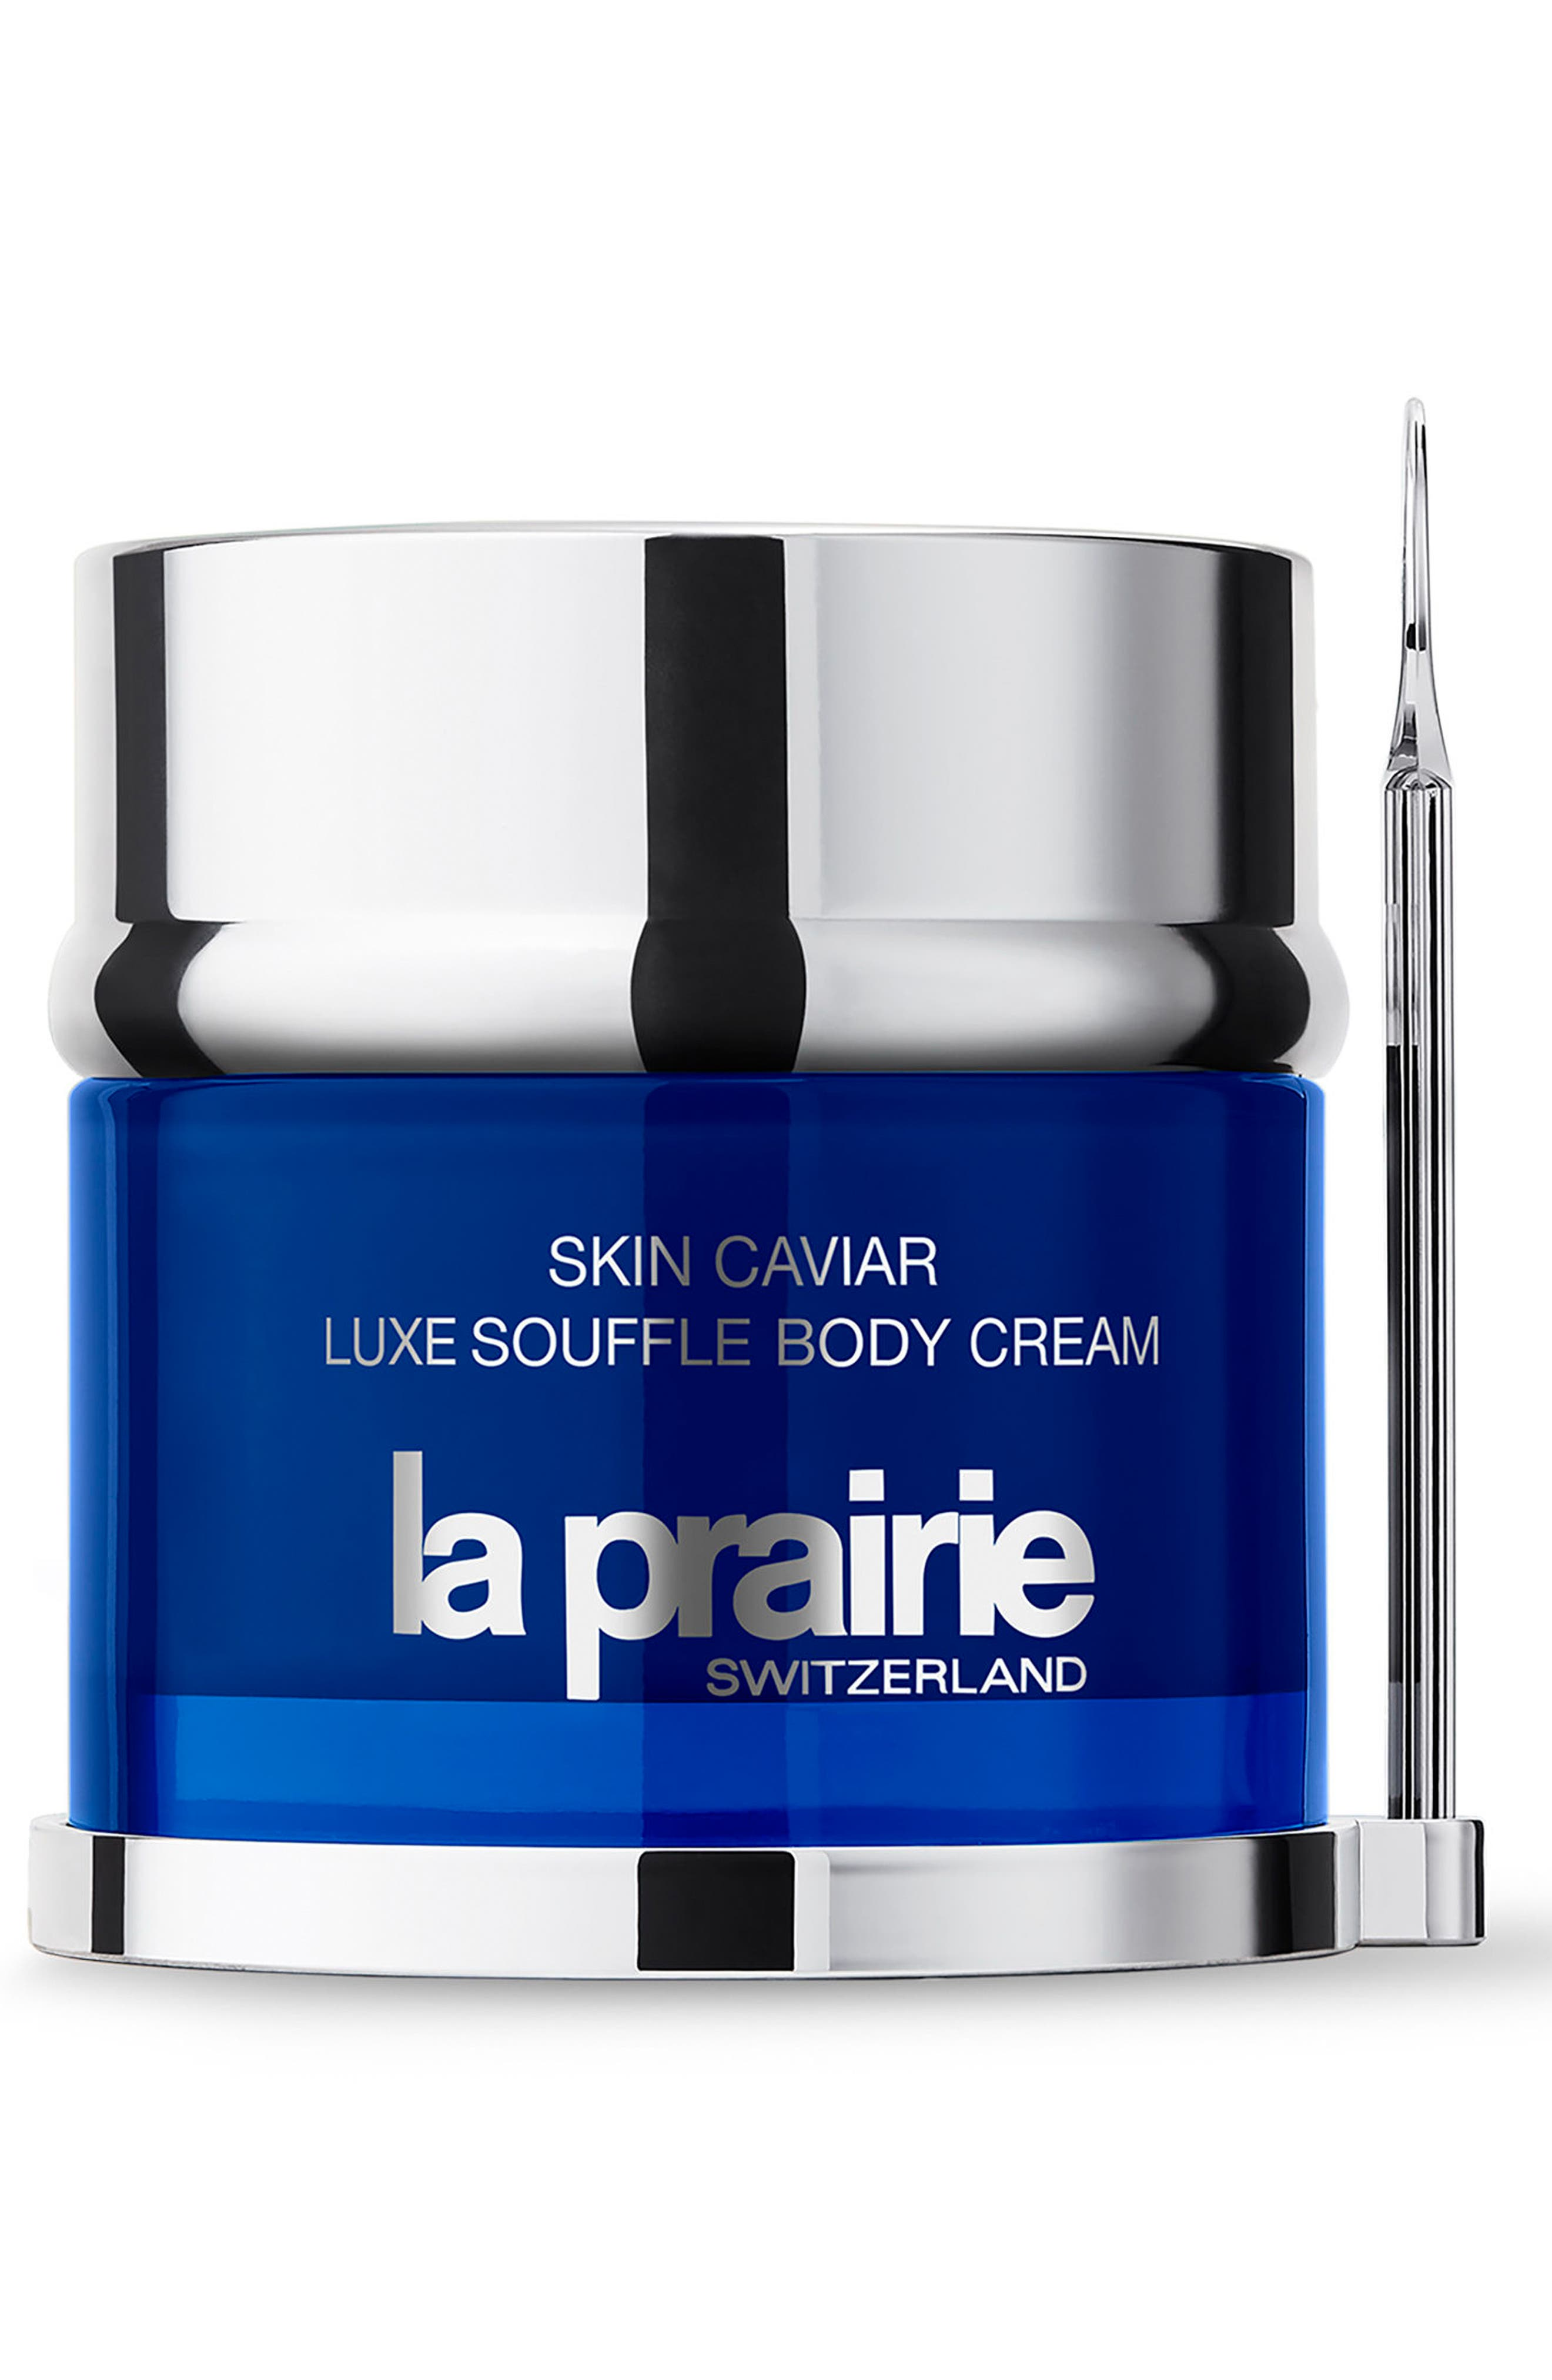 Skin Caviar Luxe Soufflé Body Cream,                             Main thumbnail 1, color,                             No Color